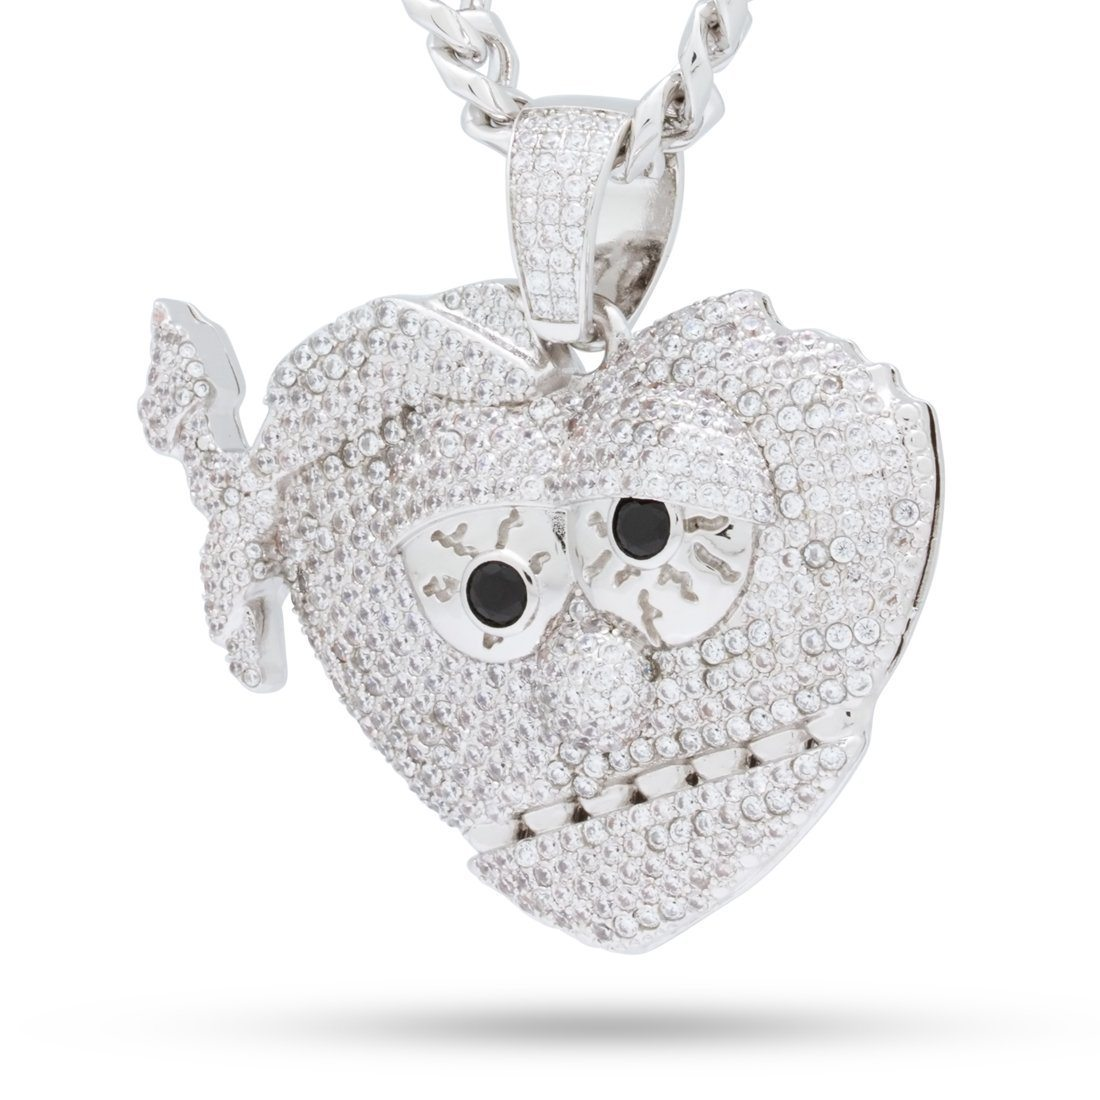 Image of Chief Keef x King Ice - White Gold XL THOT Necklace